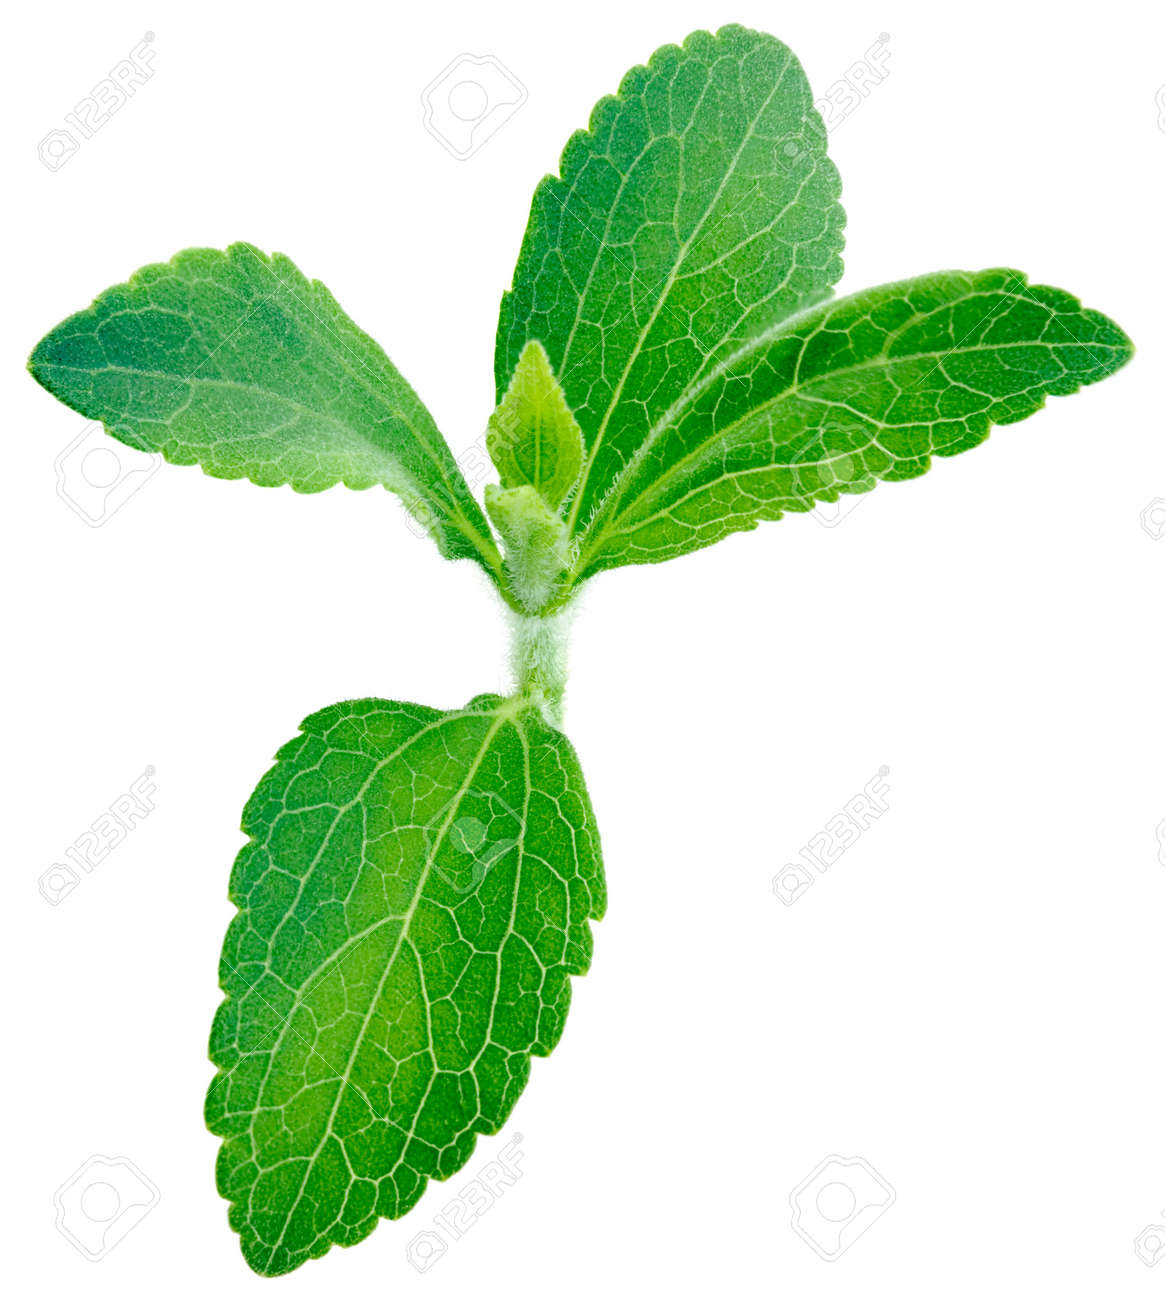 Stevia rebaudiana, sweet leaf plant, sugar substitute isolated on white background with copy space Standard-Bild - 13564173